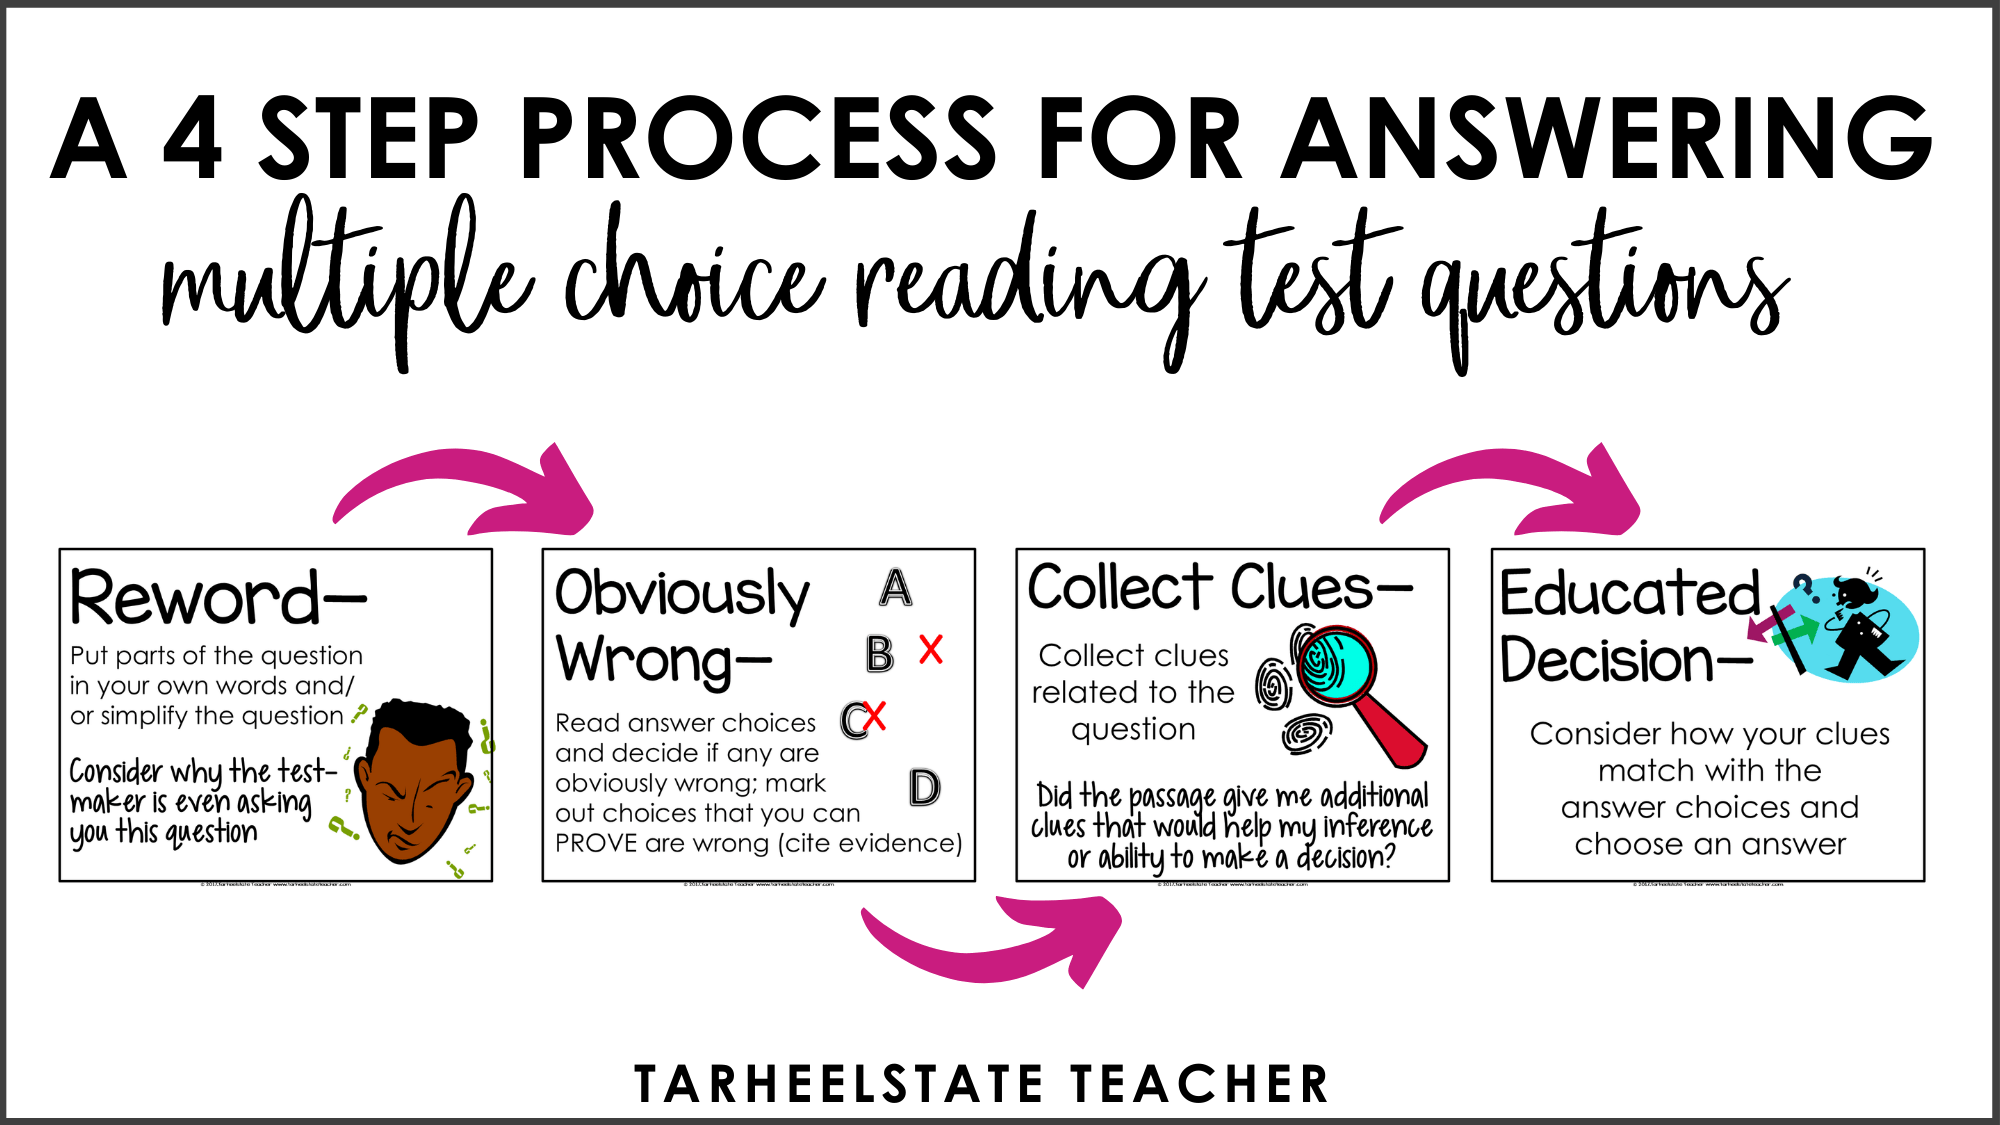 A 4 Step Process for Answering Multiple Choice Reading Questions —  Tarheelstate Teacher [ 844 x 1500 Pixel ]